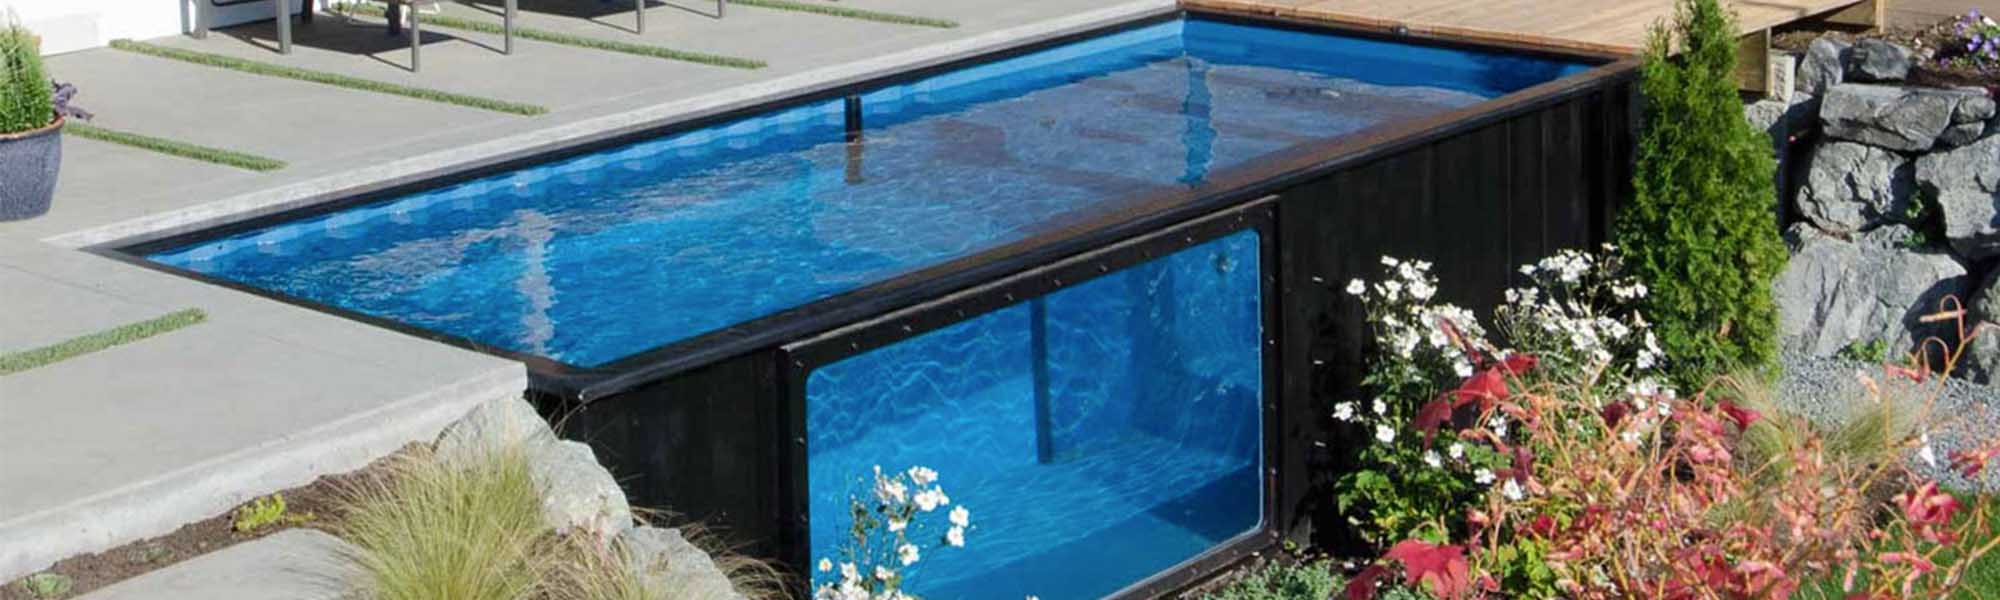 piscine container un ovni dans votre jardin conseil. Black Bedroom Furniture Sets. Home Design Ideas